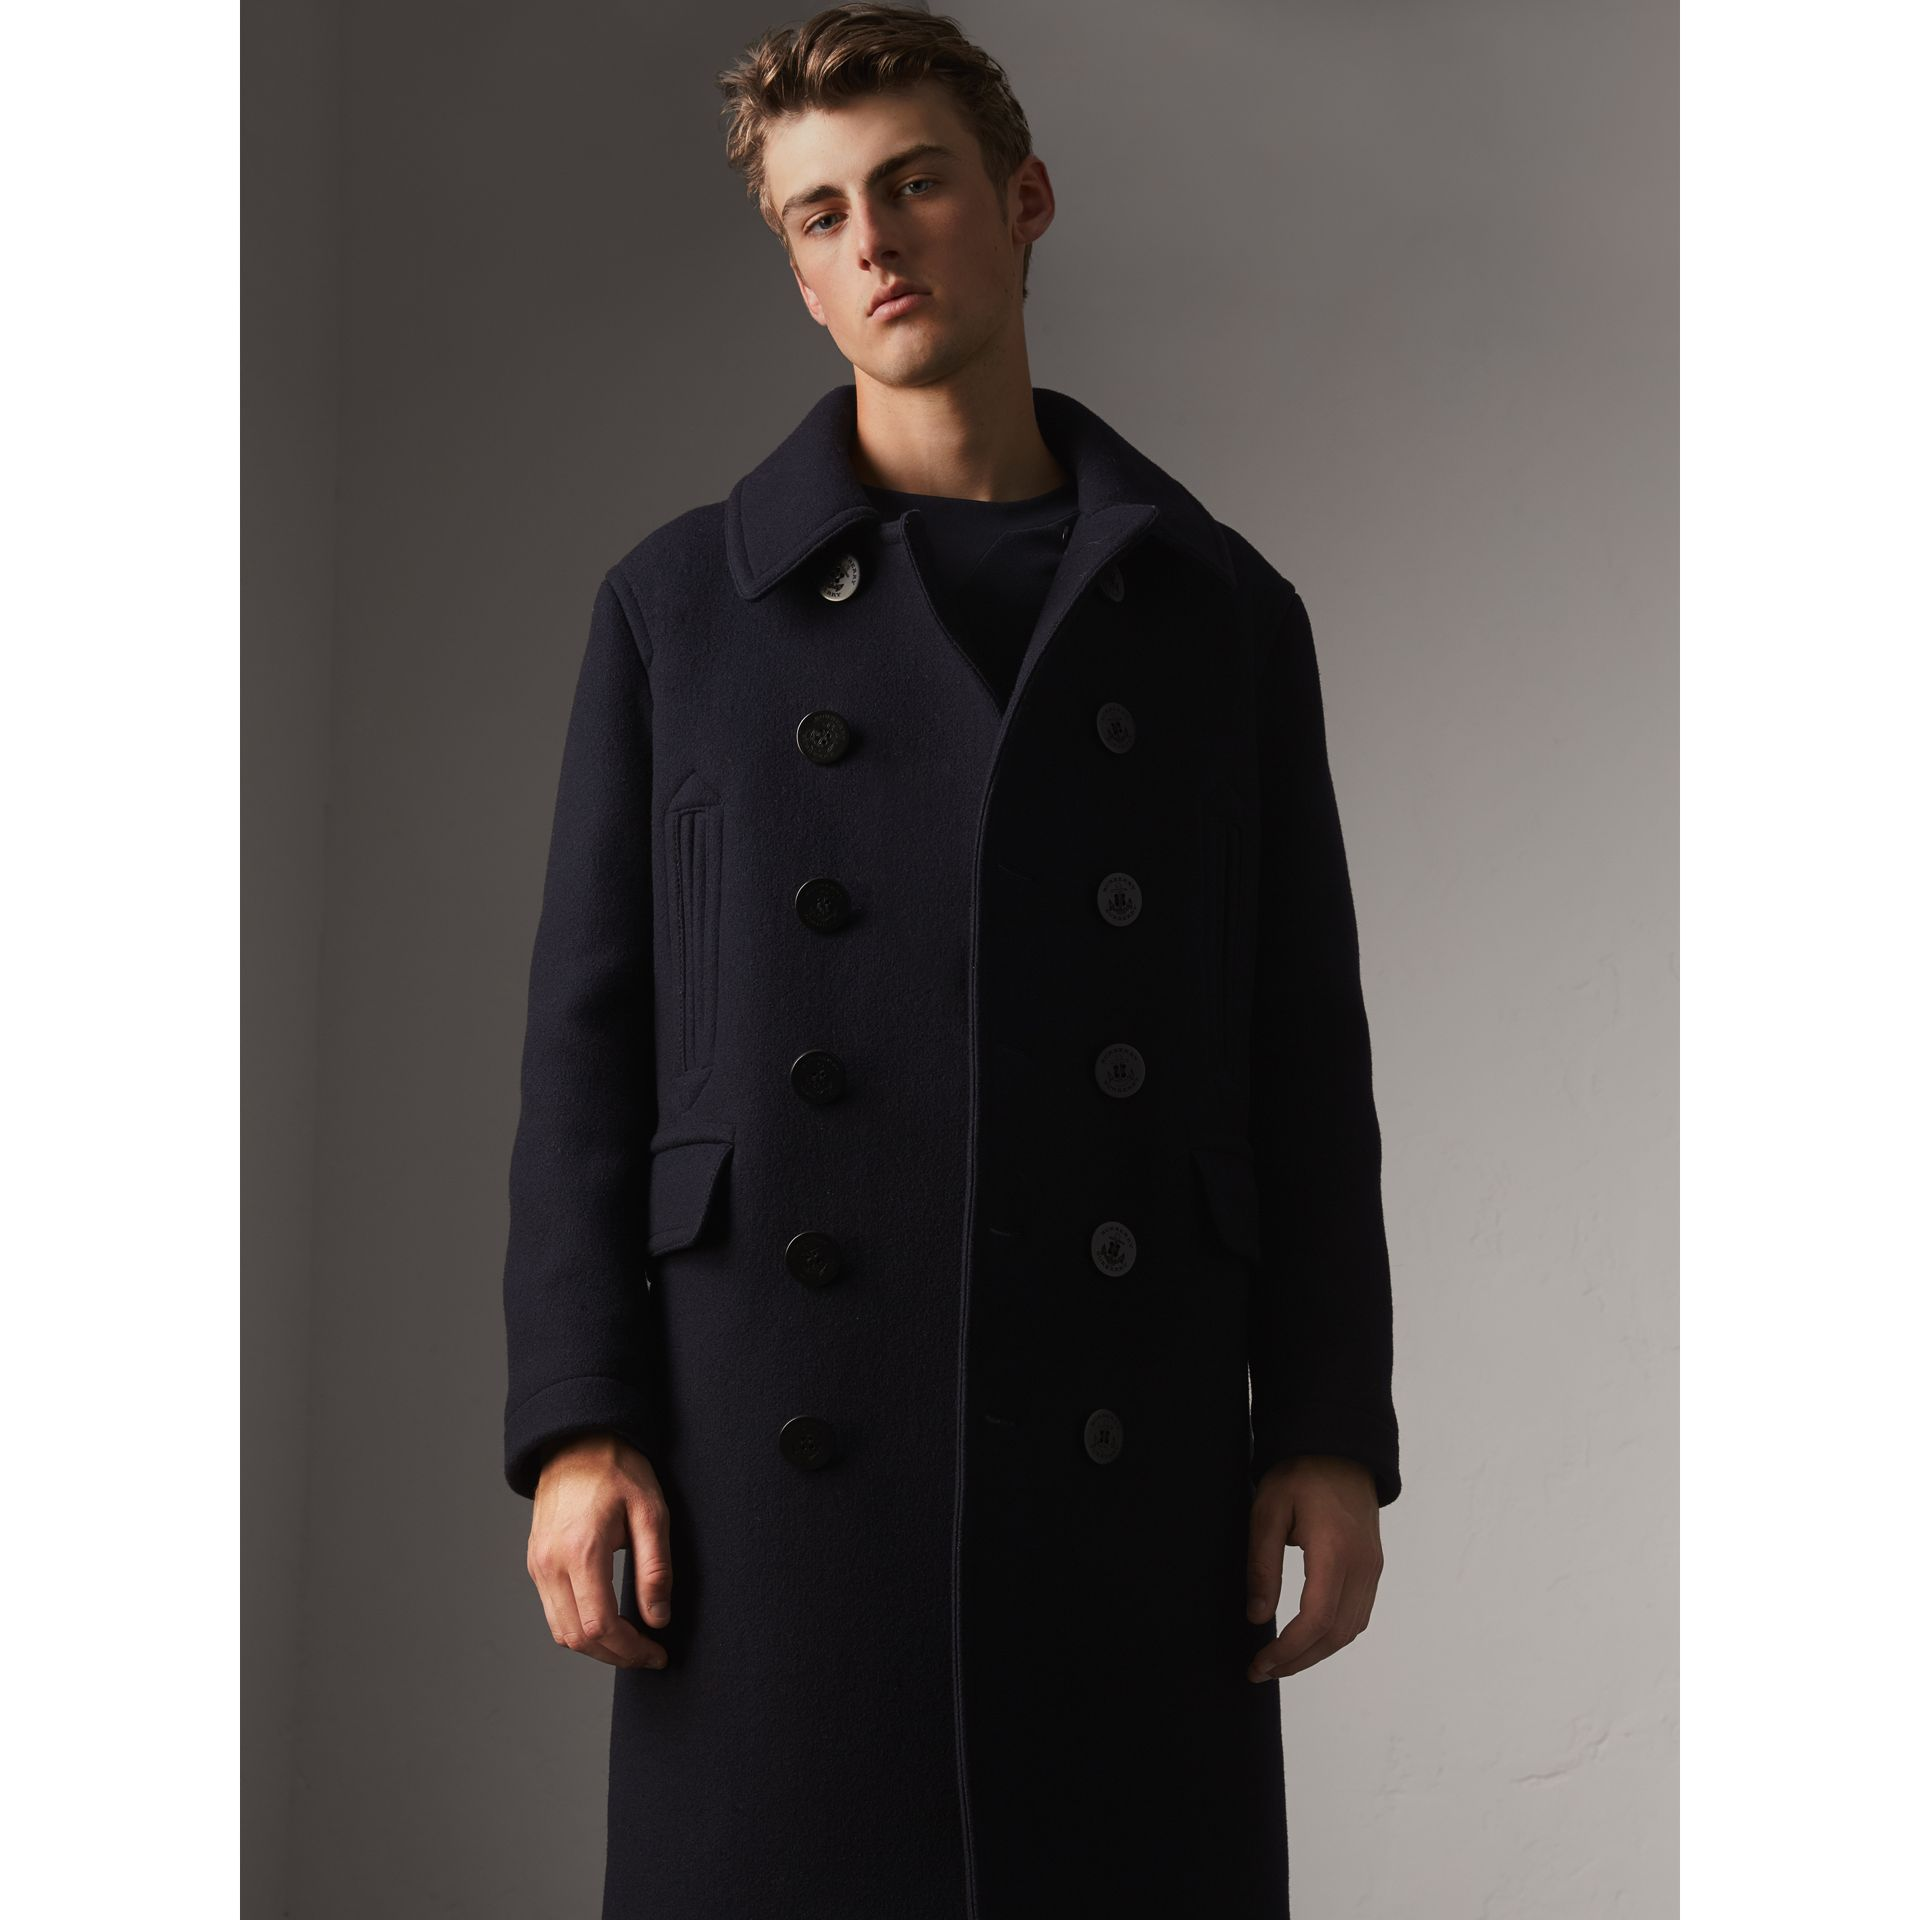 Wool Blend Double-breasted Coat in Navy - Men | Burberry Hong Kong - gallery image 5